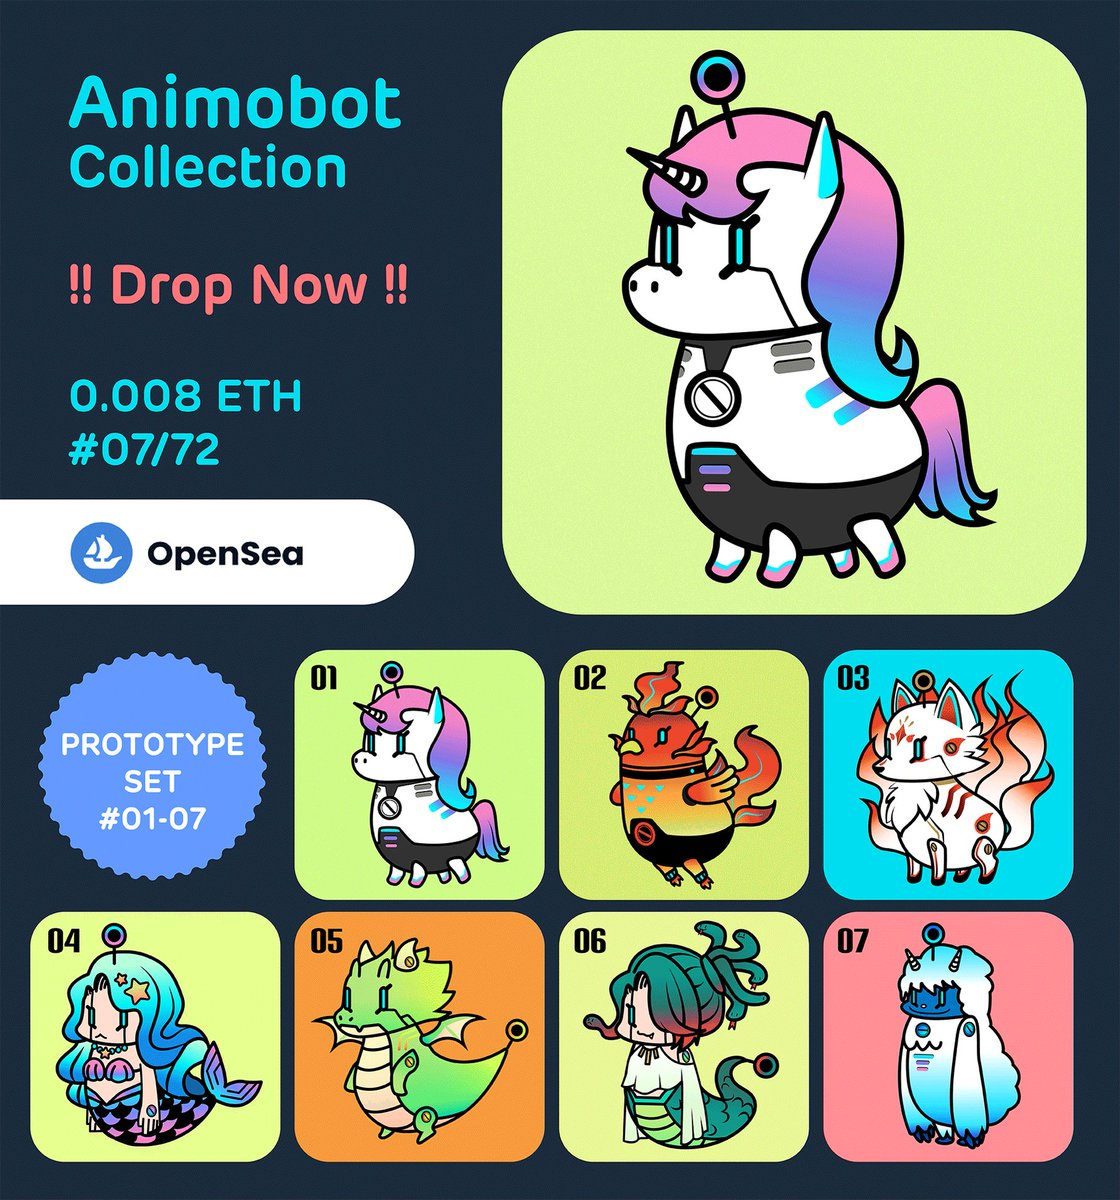 🔥New Drop🔥 Animobot Collection  Prototype set #01-07/72  ✨Available now on opensea✨ opensea.io/collection/ani…  #nftcollector #NFTTHAILAND #nftcollectors #NFTartists #NFTCommunity #NFTdrop #NFTs #nftjapan